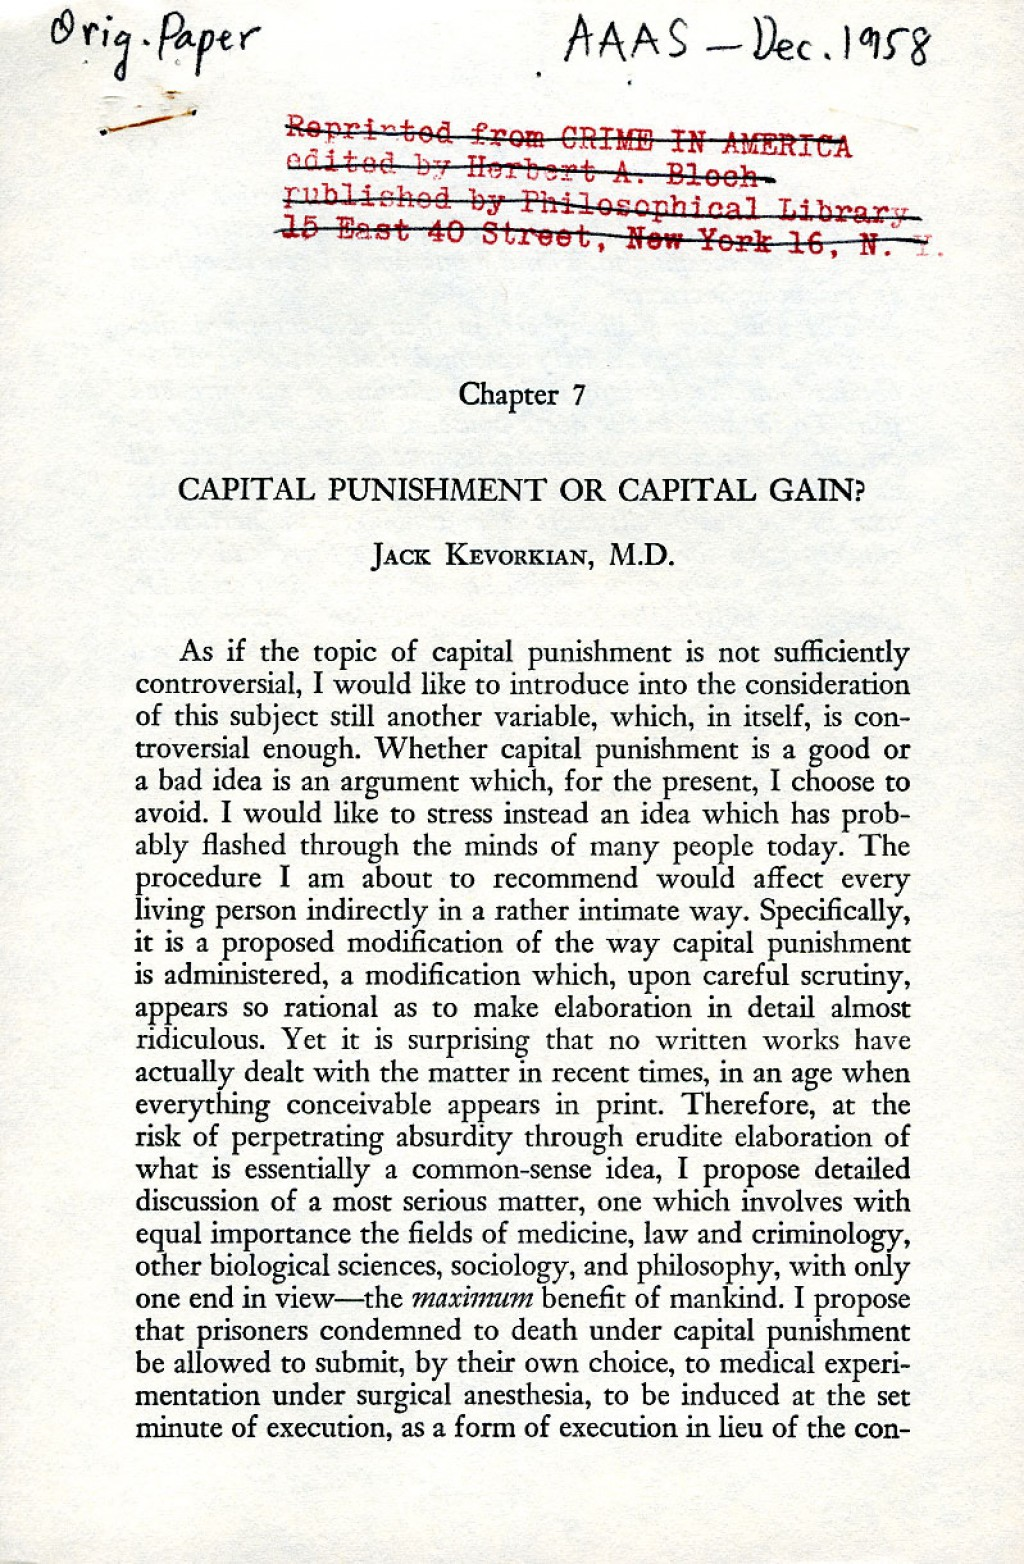 009 Essay Example Capital Punishment Against Death Penalty Shocking Essays Body Conclusion Anti Large